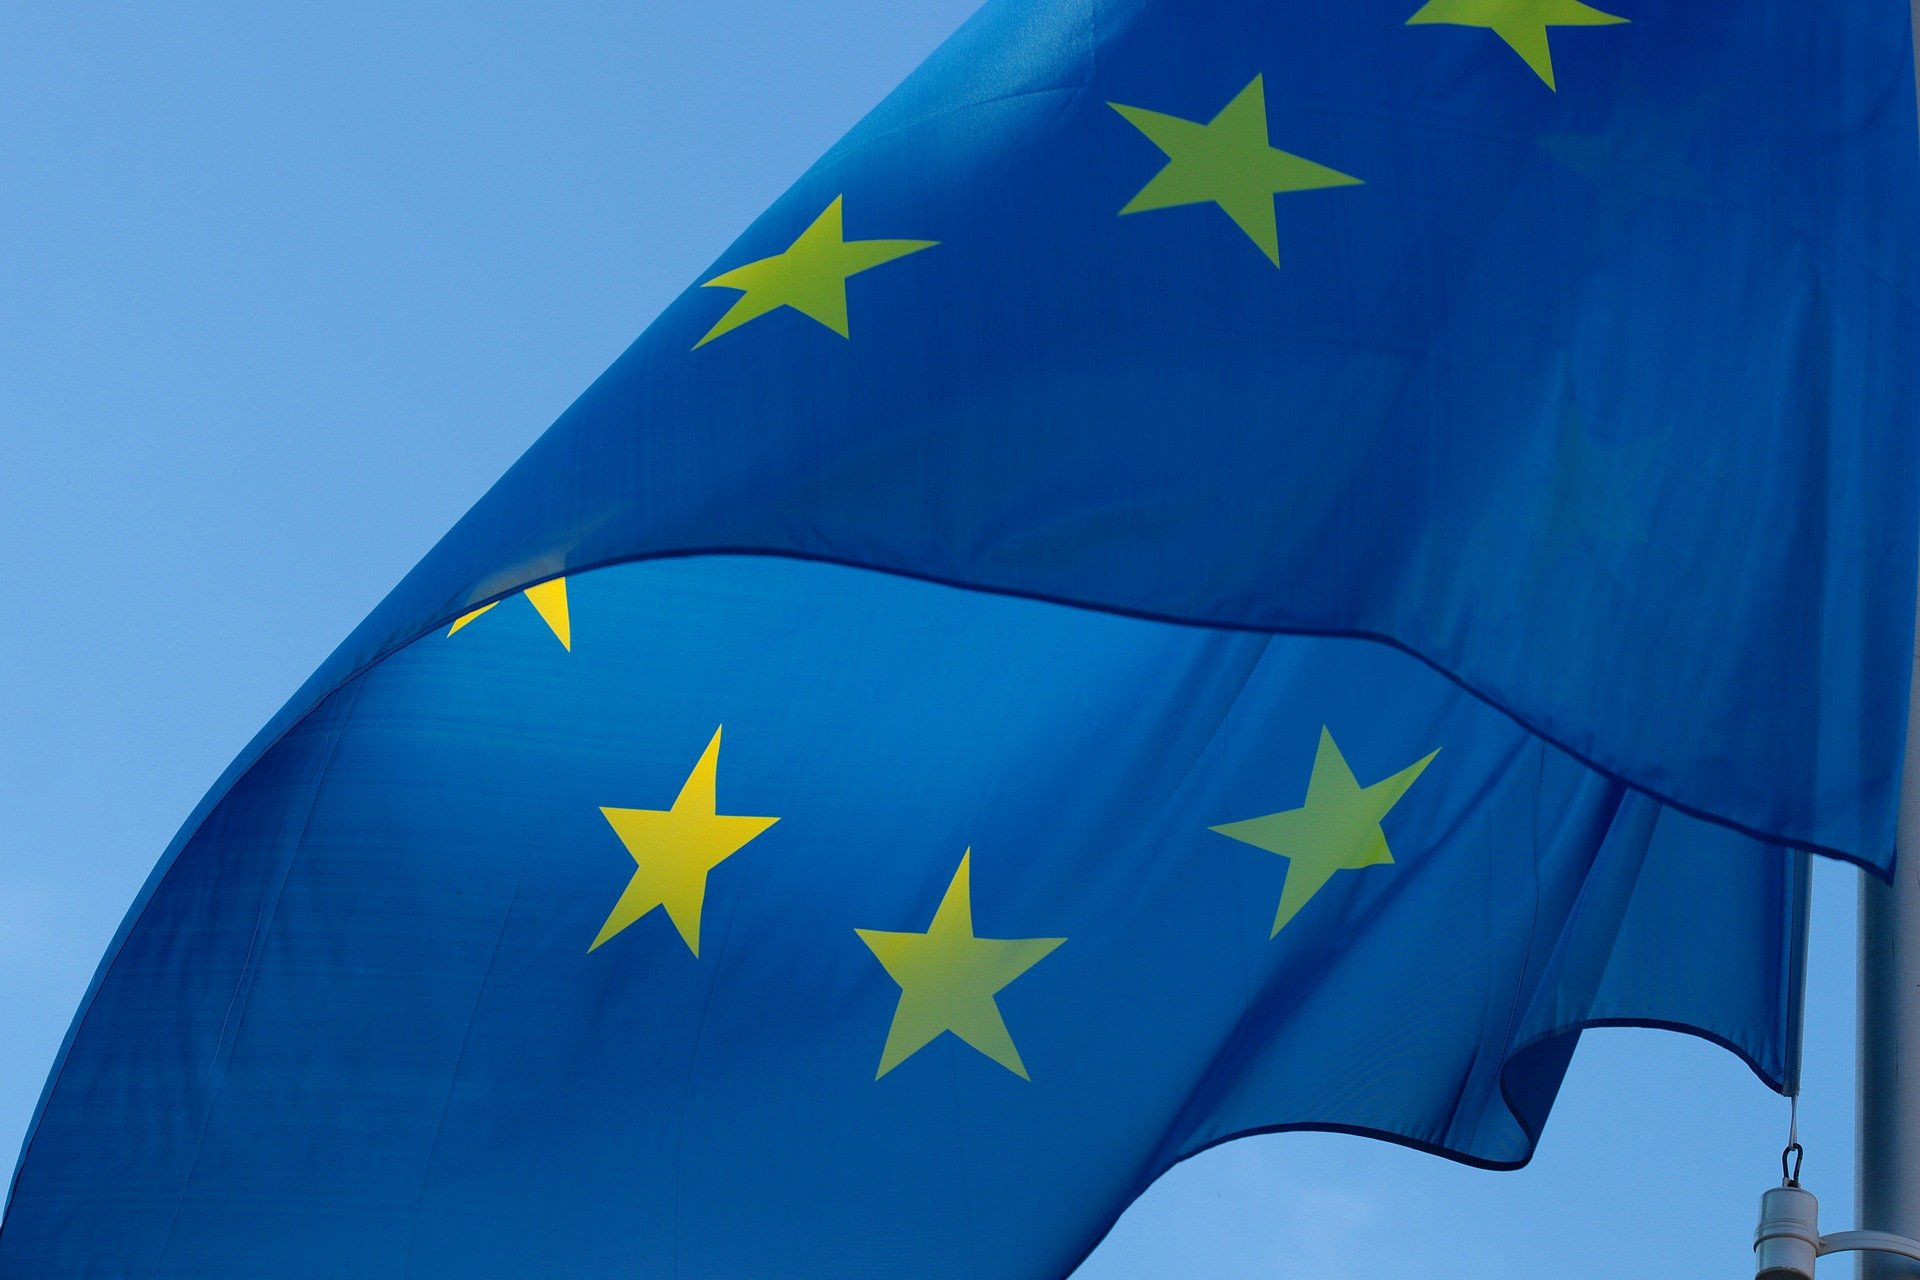 A renewed Sanctions Strategy for the EU